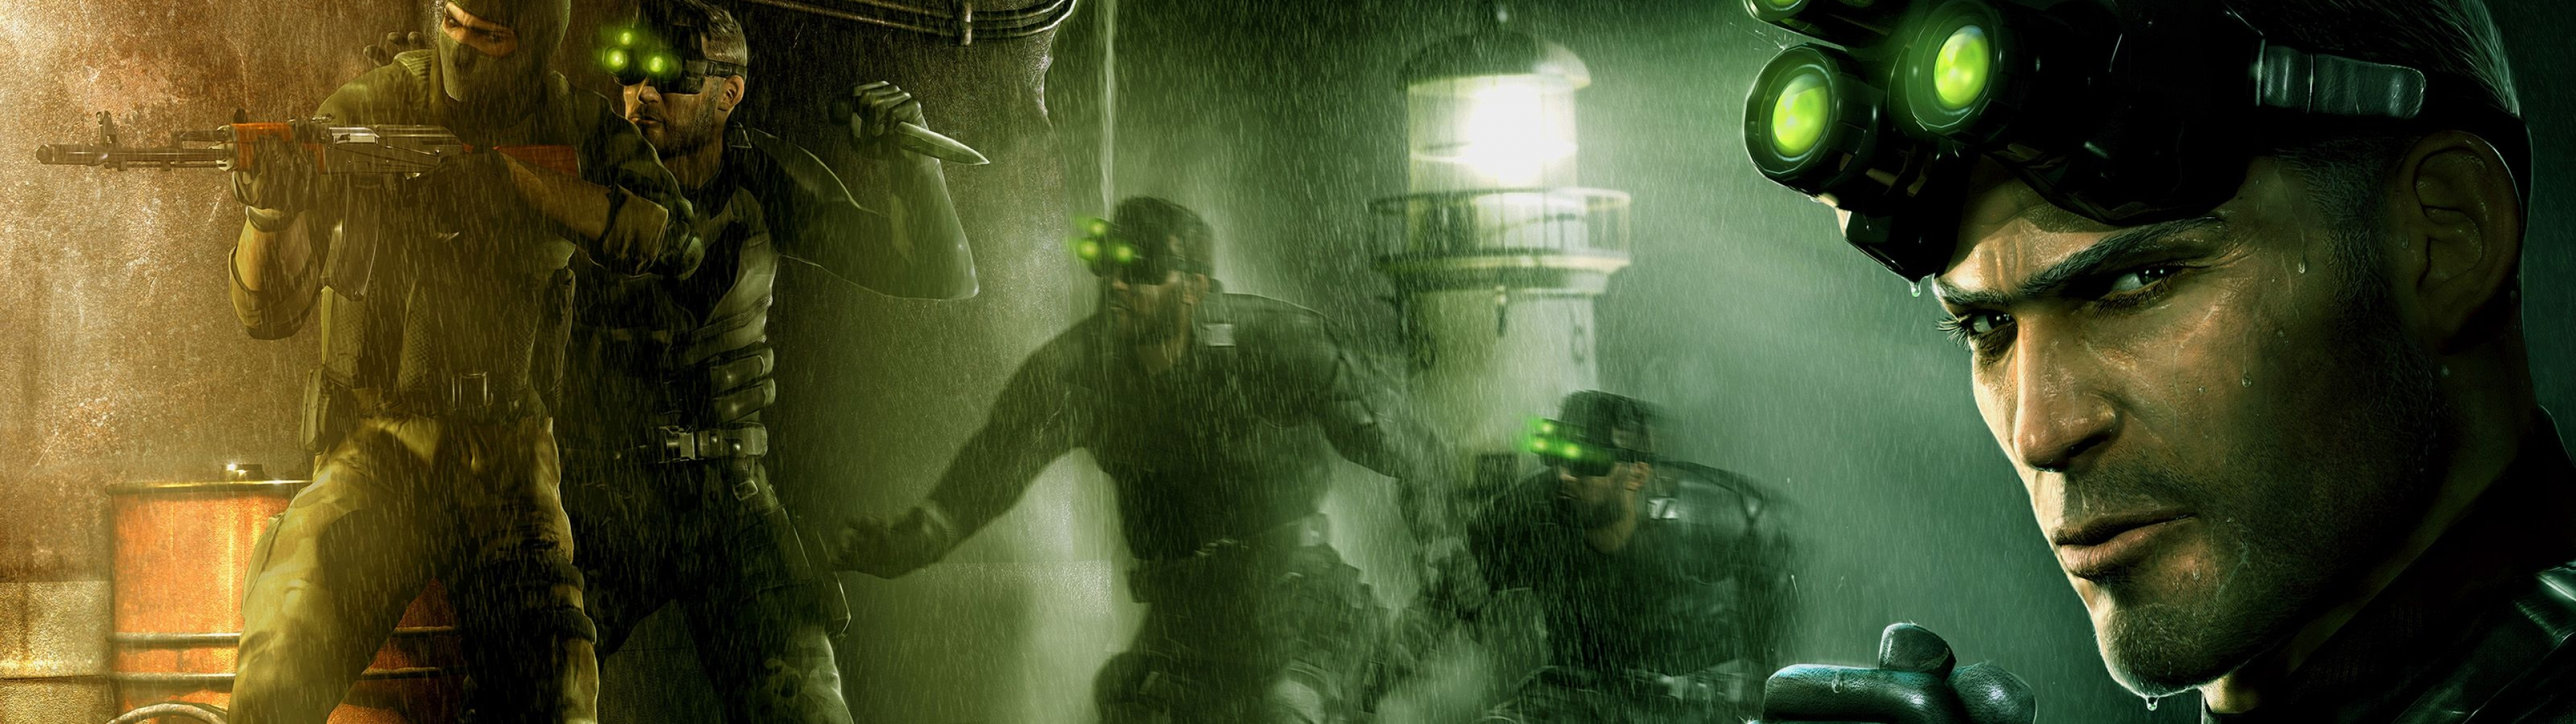 Splinter Cell: Back Stab